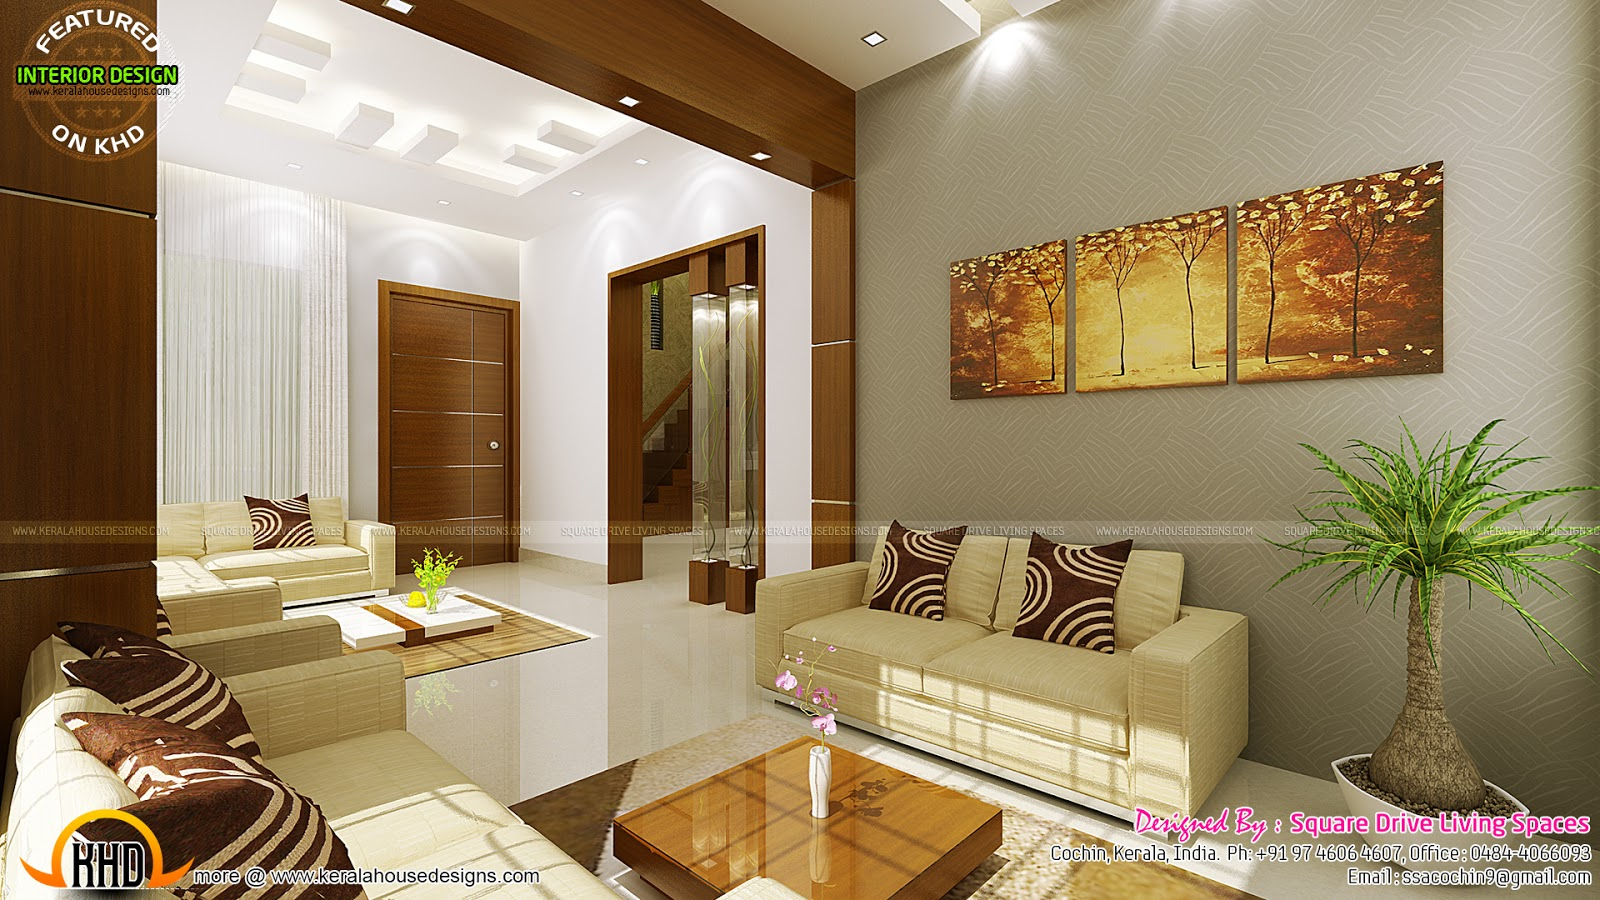 Contemporary kitchen dining and living room kerala home design and floor plans Interior design ideas for kerala houses